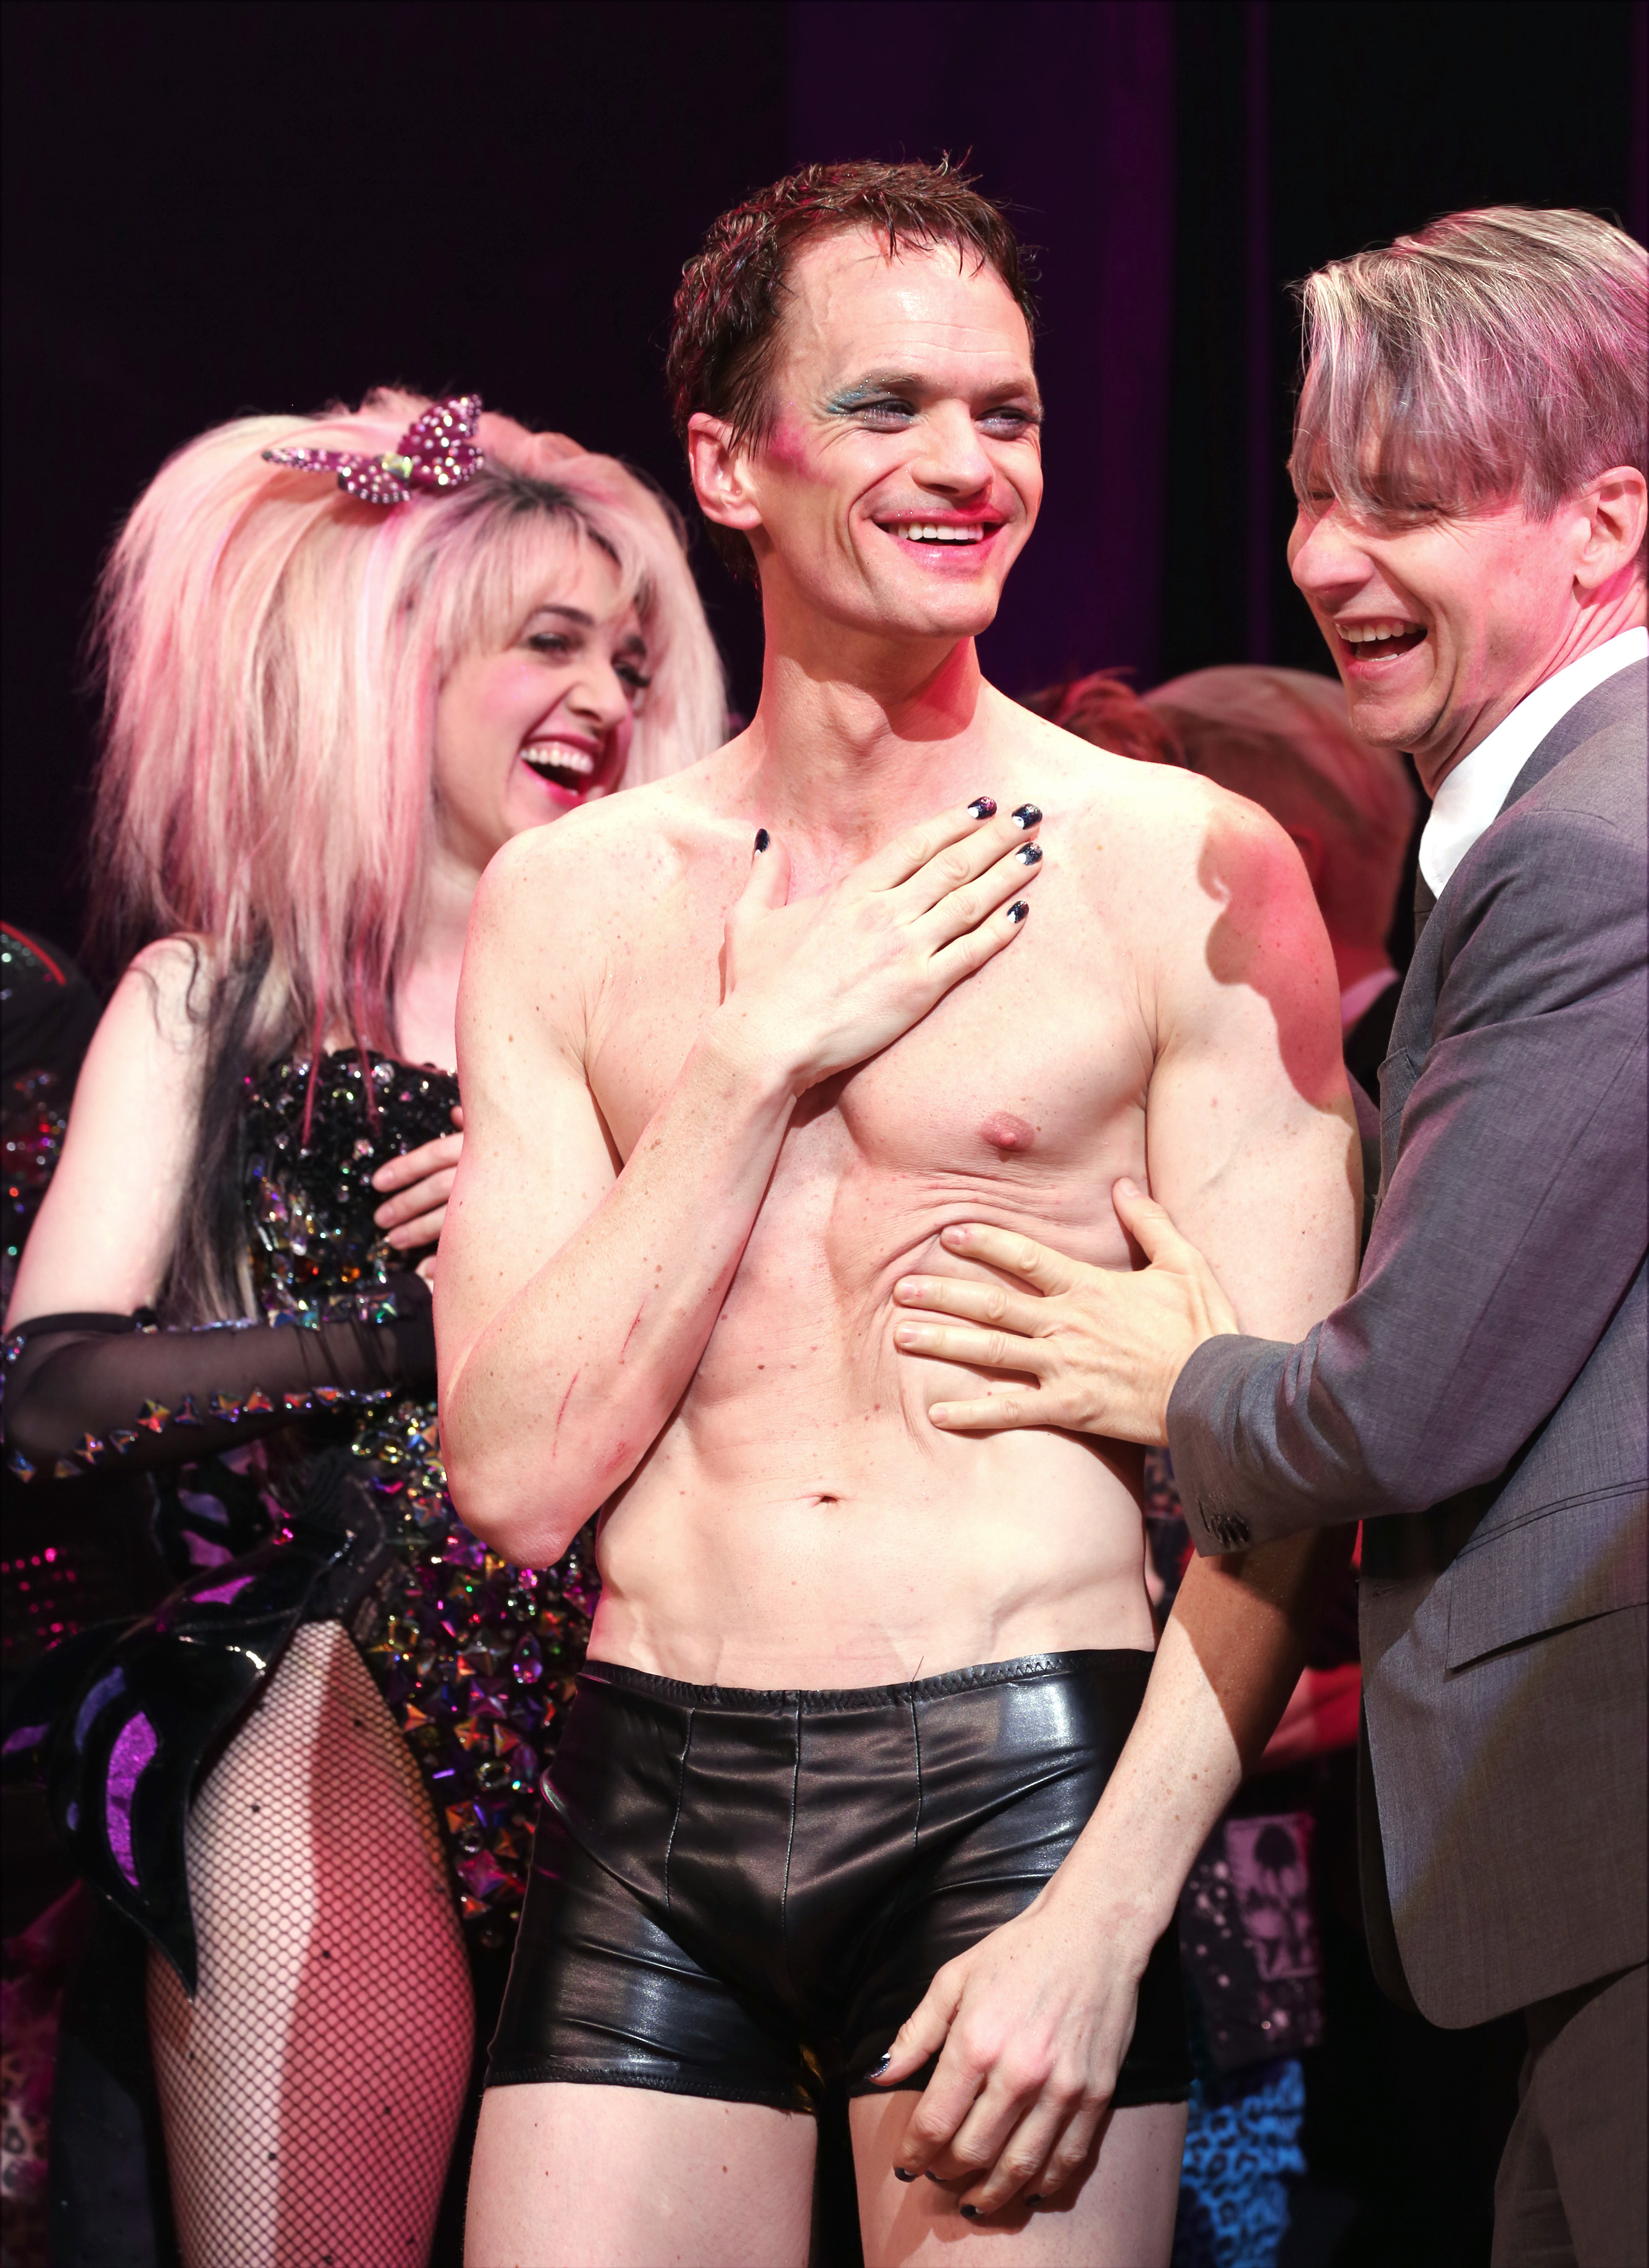 Lena Hall, Neil Patrick Harris and John Cameron Mitchell during the Broadway Opening Night Performance Curtain Call for 'Hedwig and the Angry Inch' at the Belasco Theatre on April 22, 2014 in New York City.